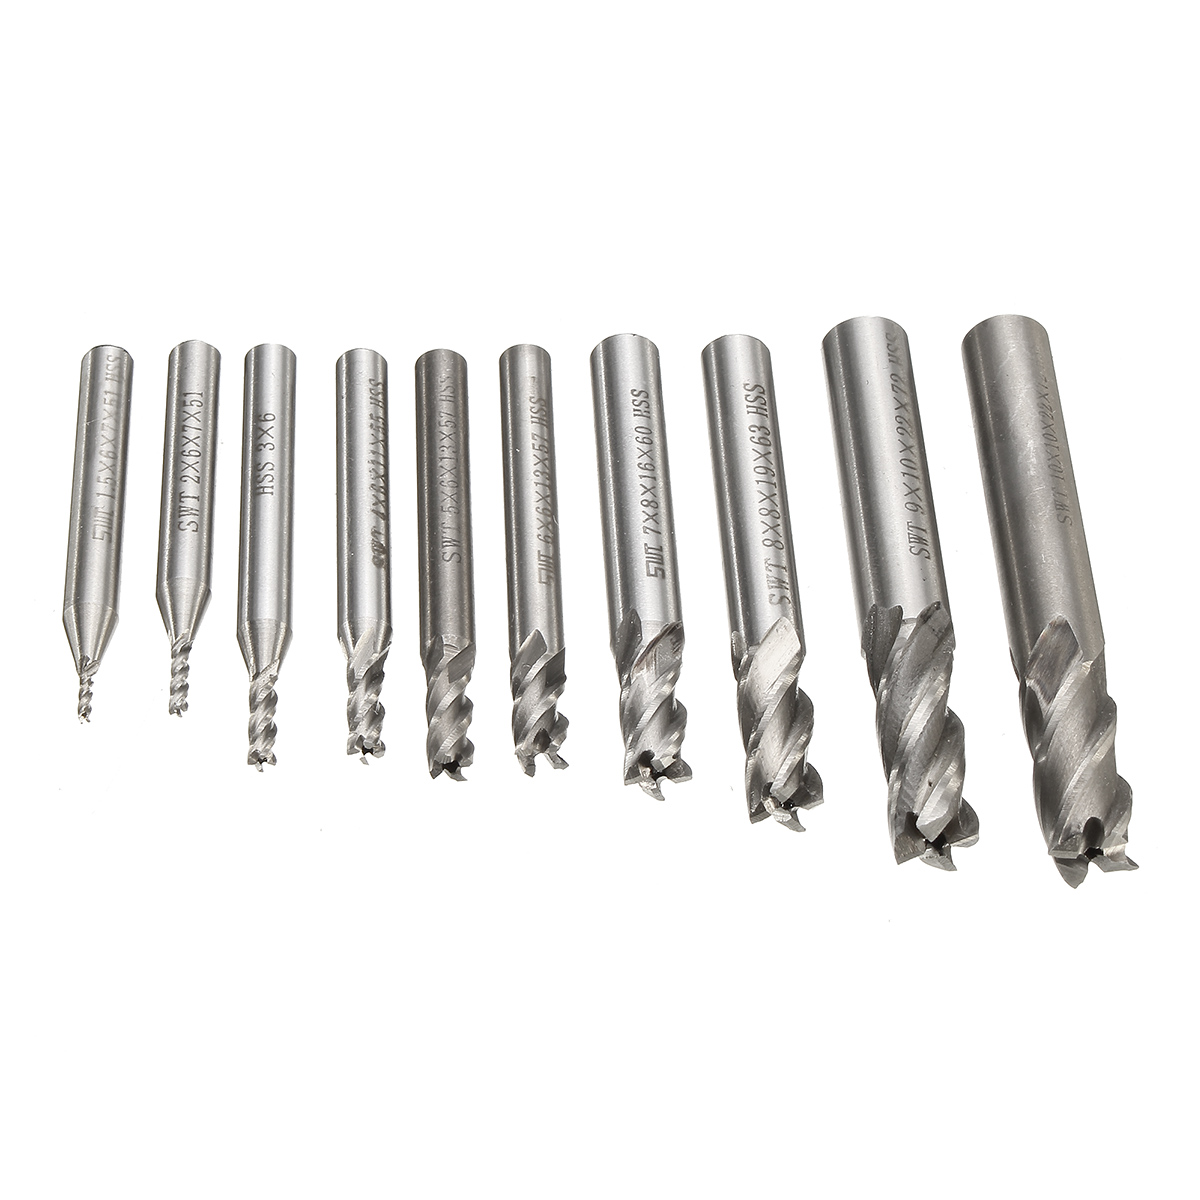 10pcs 1.5-10mm HSS 4 Flute CNC End Mill Cutter Straight Shank End Milling Cutter